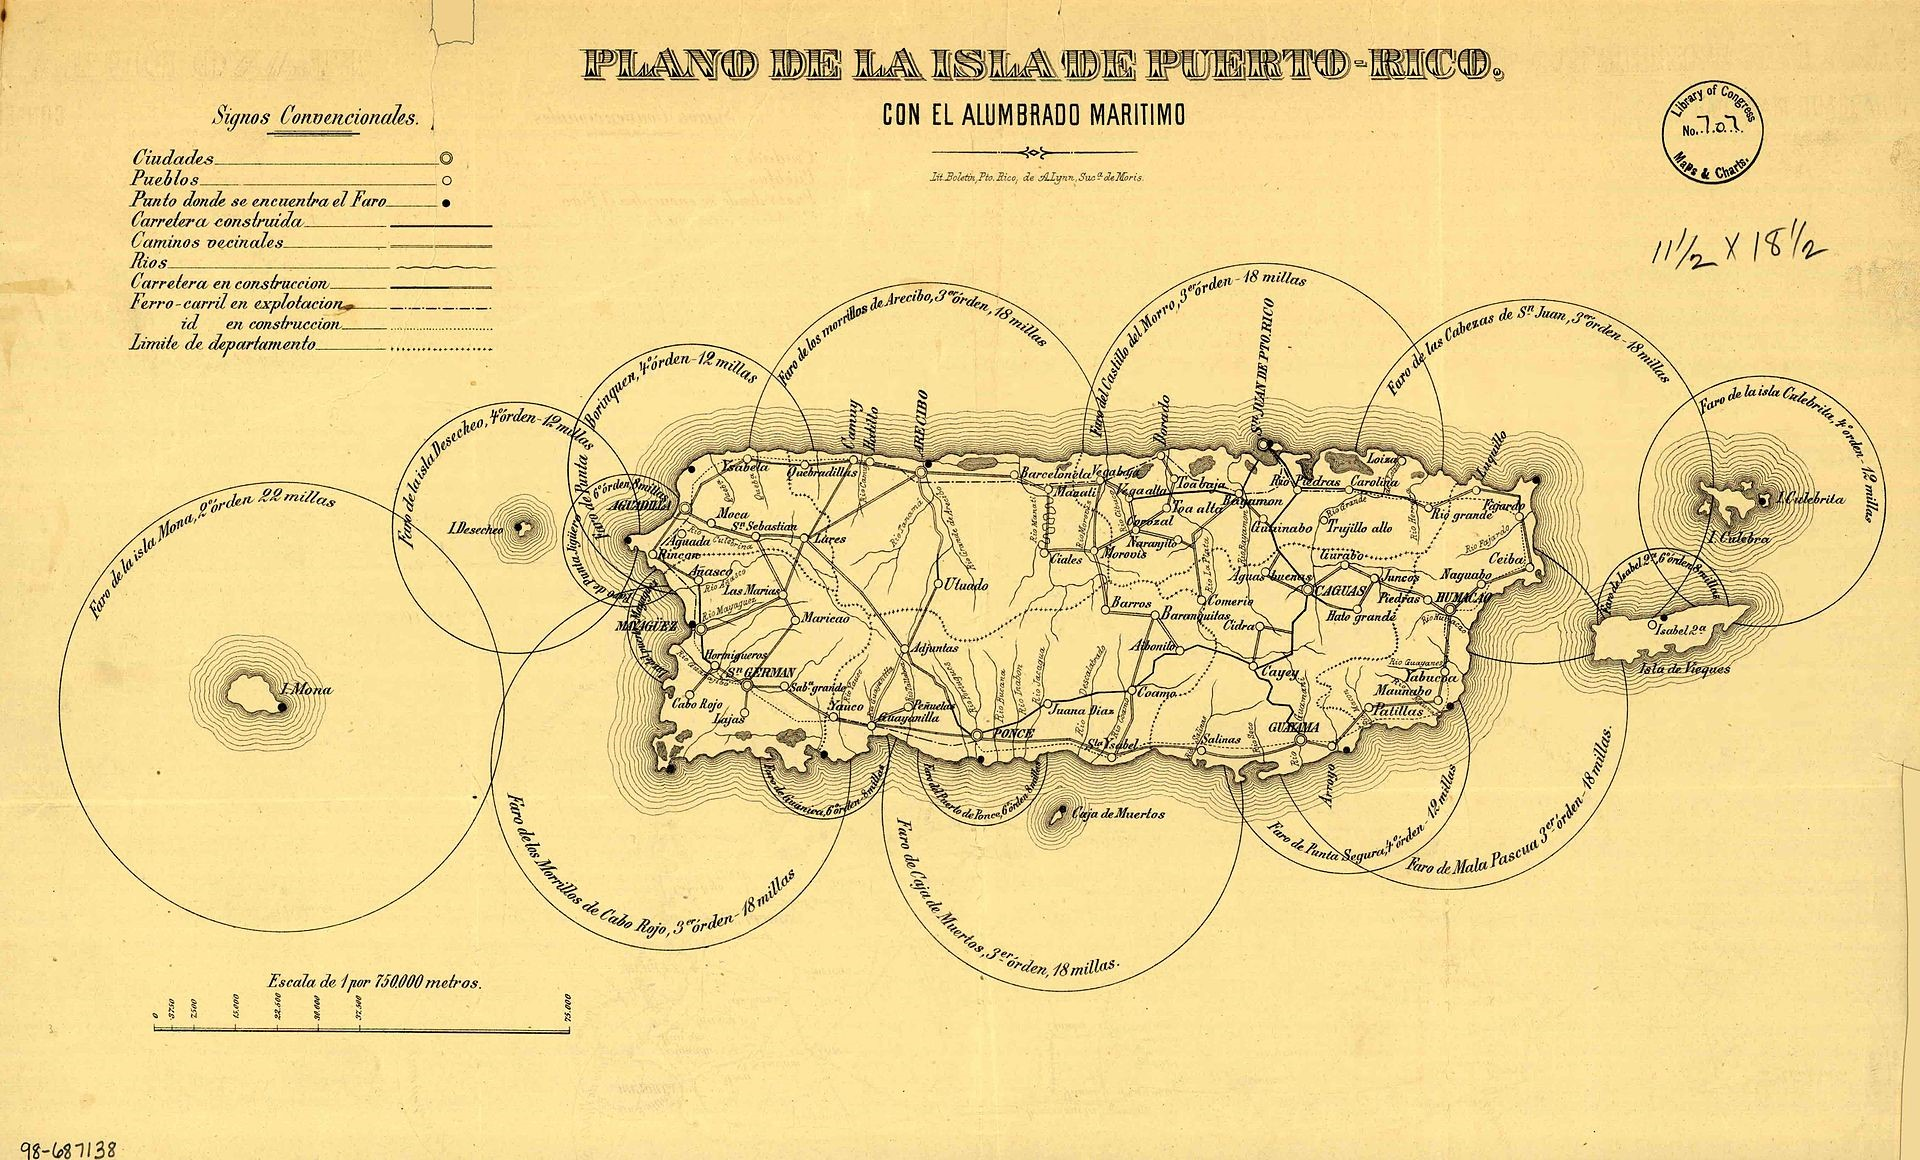 Map showing Puerto Rico's maritime lighthouse and road plans map circa 1885. (Wikipedia)